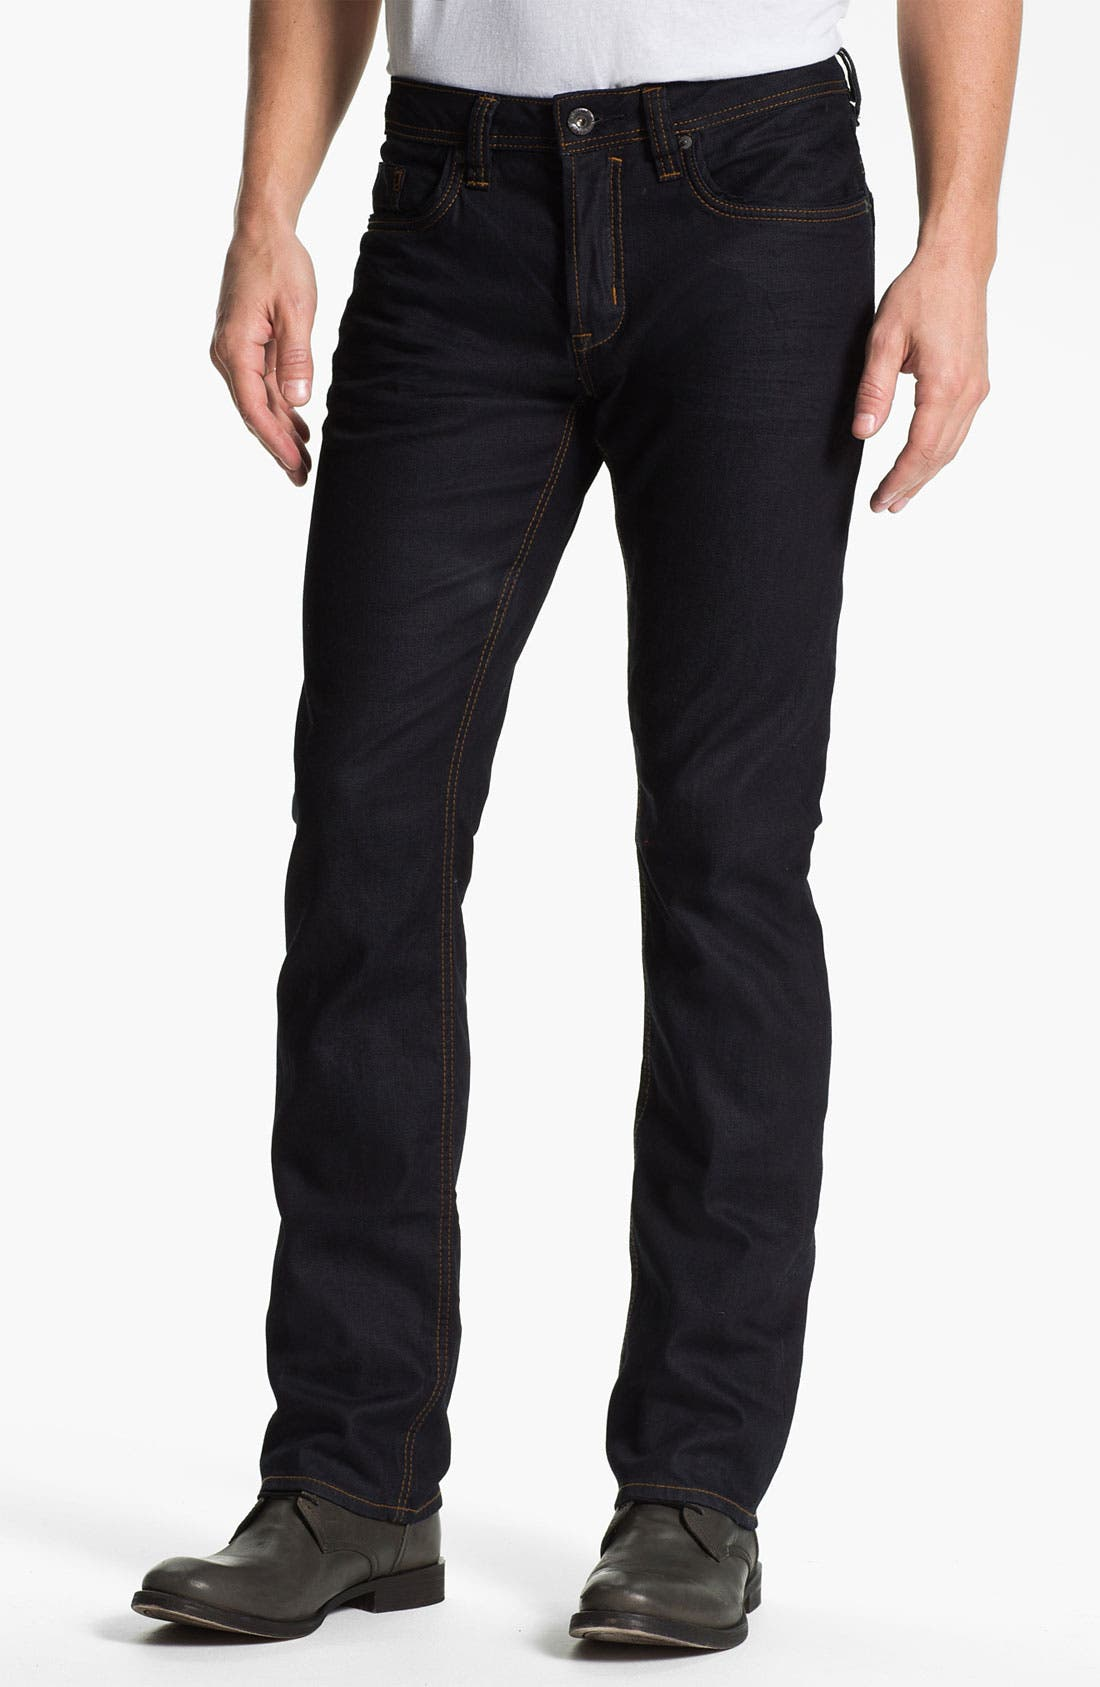 Alternate Image 1 Selected - Buffalo Jeans 'Evan-X' Slim Straight Leg Jeans (Dark/Authentic)